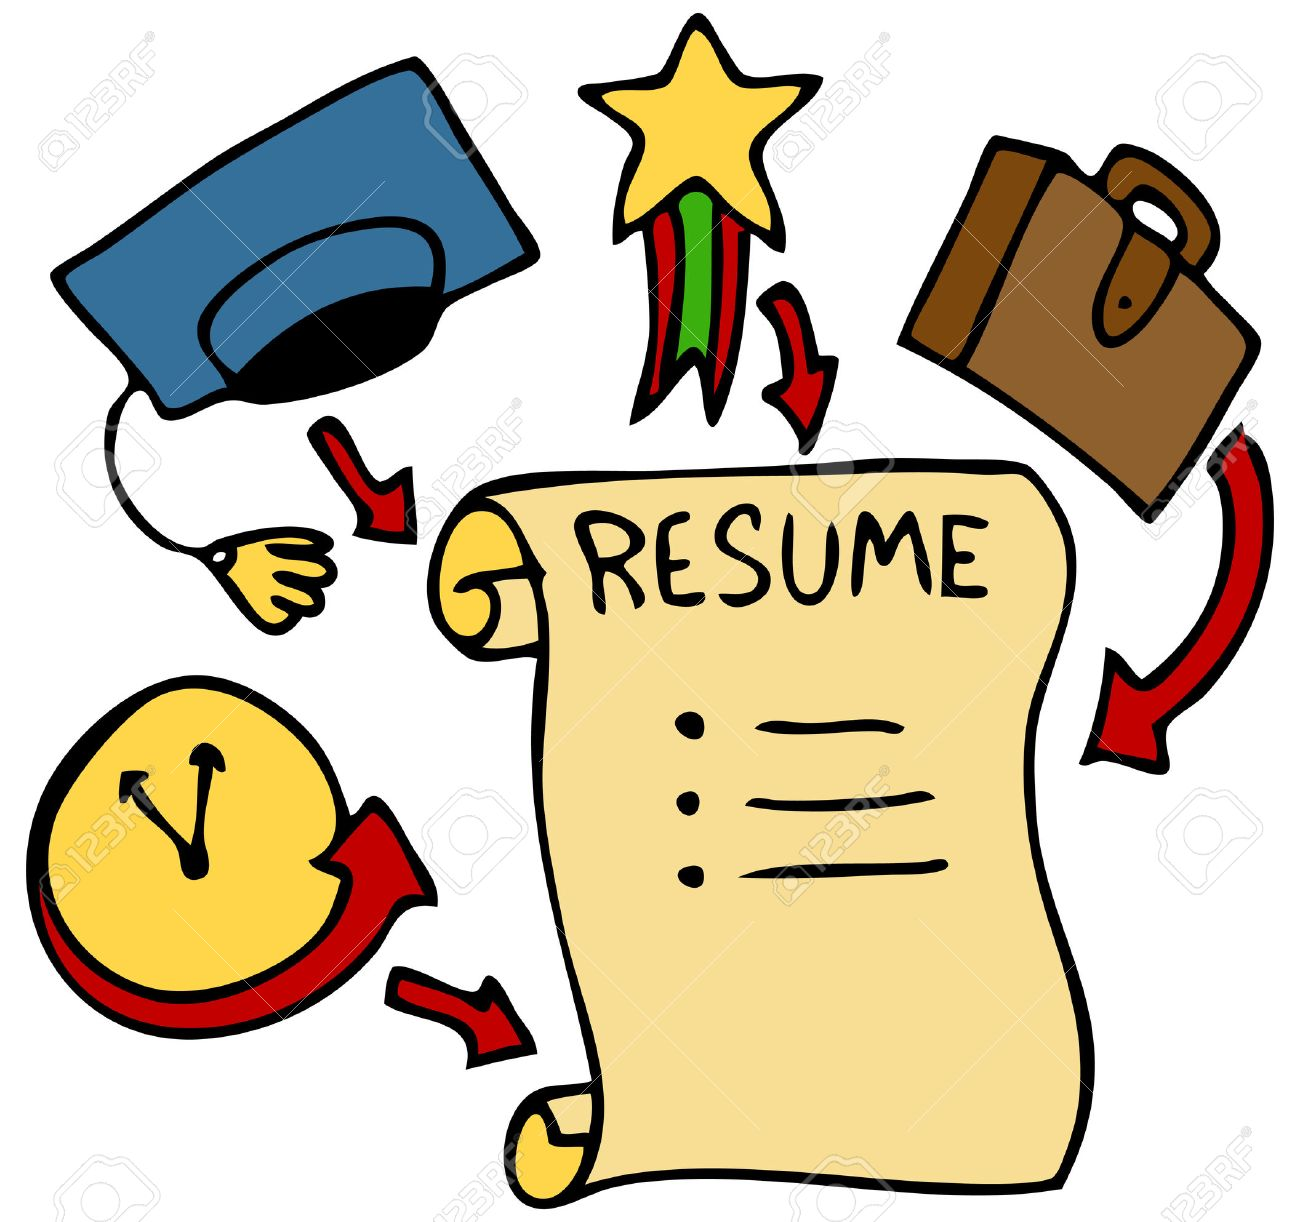 An Image Of A Resume History Education Awards And Experience